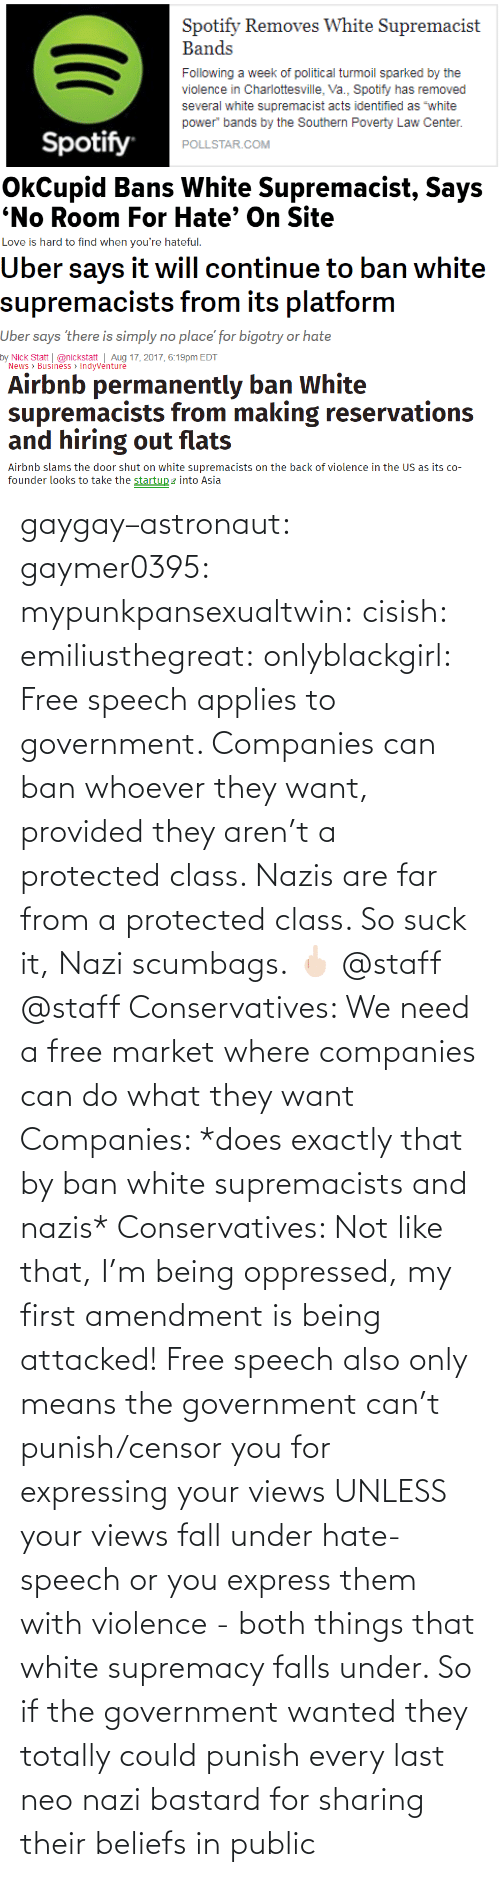 staff: gaygay–astronaut: gaymer0395:  mypunkpansexualtwin:  cisish:  emiliusthegreat:  onlyblackgirl:   Free speech applies to government. Companies can ban whoever they want, provided they aren't a protected class. Nazis are far from a protected class. So suck it, Nazi scumbags. 🖕🏻   @staff      @staff     Conservatives: We need a free market where companies can do what they want Companies: *does exactly that by ban white supremacists and nazis* Conservatives: Not like that, I'm being oppressed, my first amendment is being attacked!  Free speech also only means the government can't punish/censor you for expressing your views UNLESS your views fall under hate-speech or you express them with violence - both things that white supremacy falls under. So if the government wanted they totally could punish every last neo nazi bastard for sharing their beliefs in public